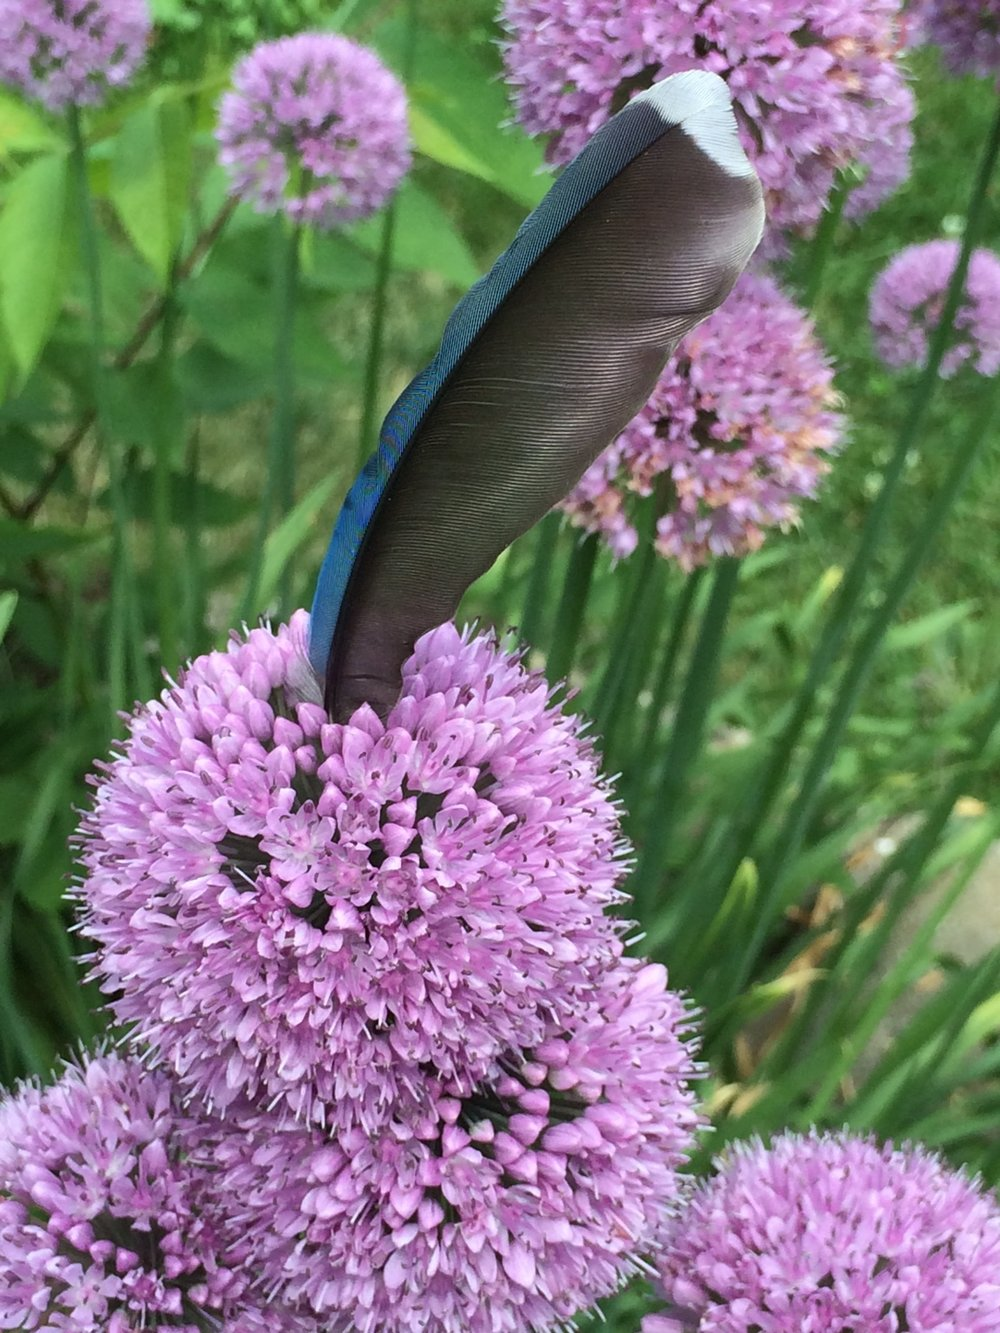 A blooming blue jay feather.